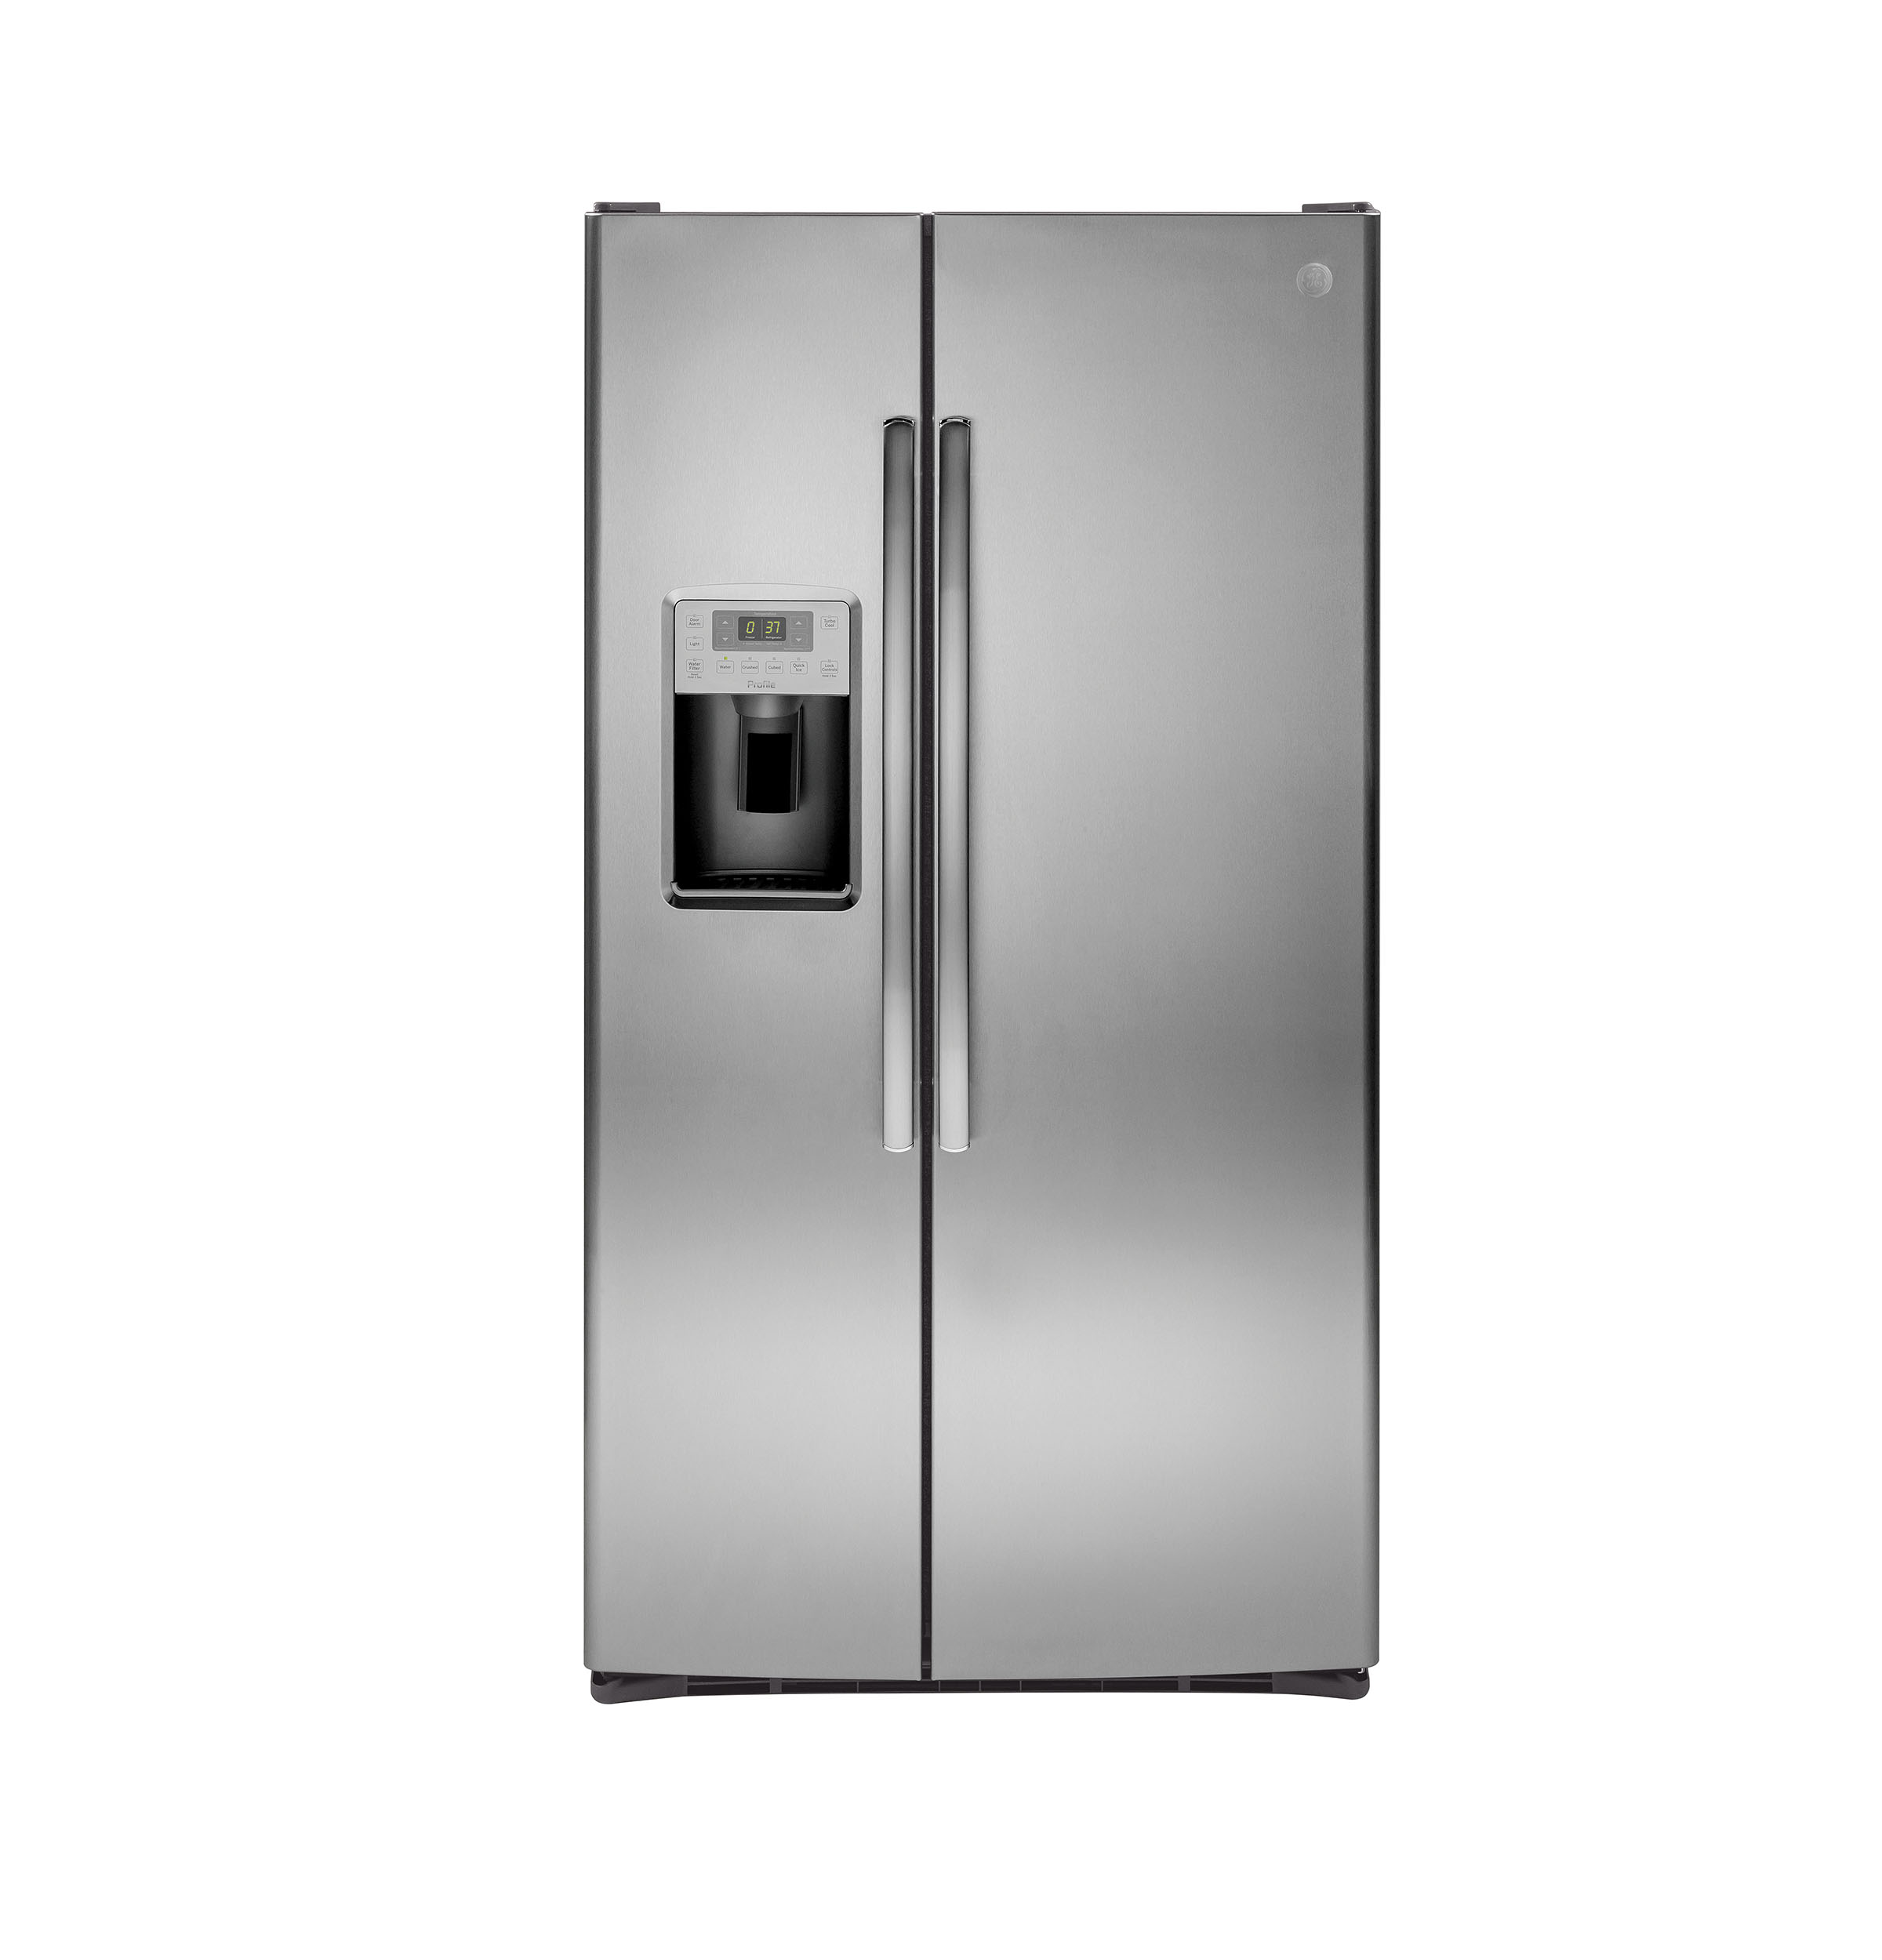 Ge 30 inch side by side white refrigerator - Product Image